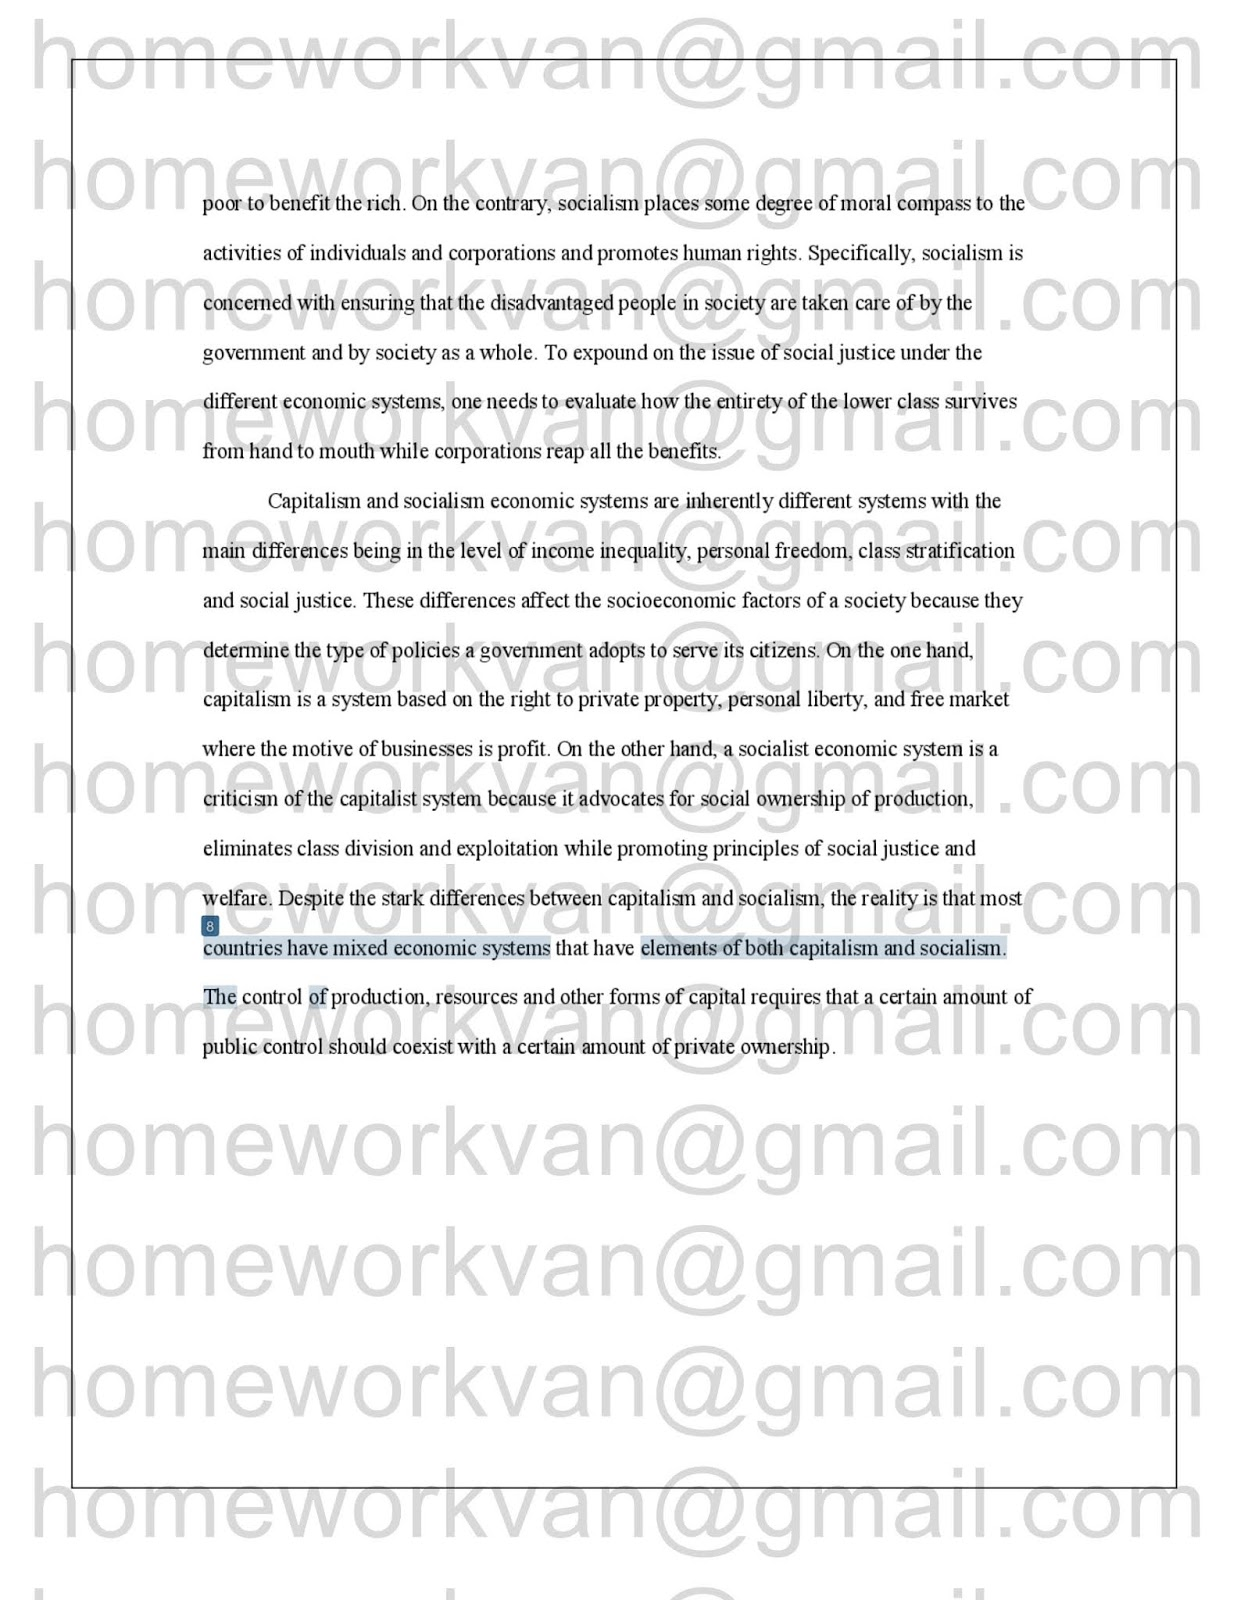 005 Compare2band2bcontrast2bessay2beconomic2bsystems2b252812529 Essay Example Breathtaking Capitalism Topics Question Pdf Full